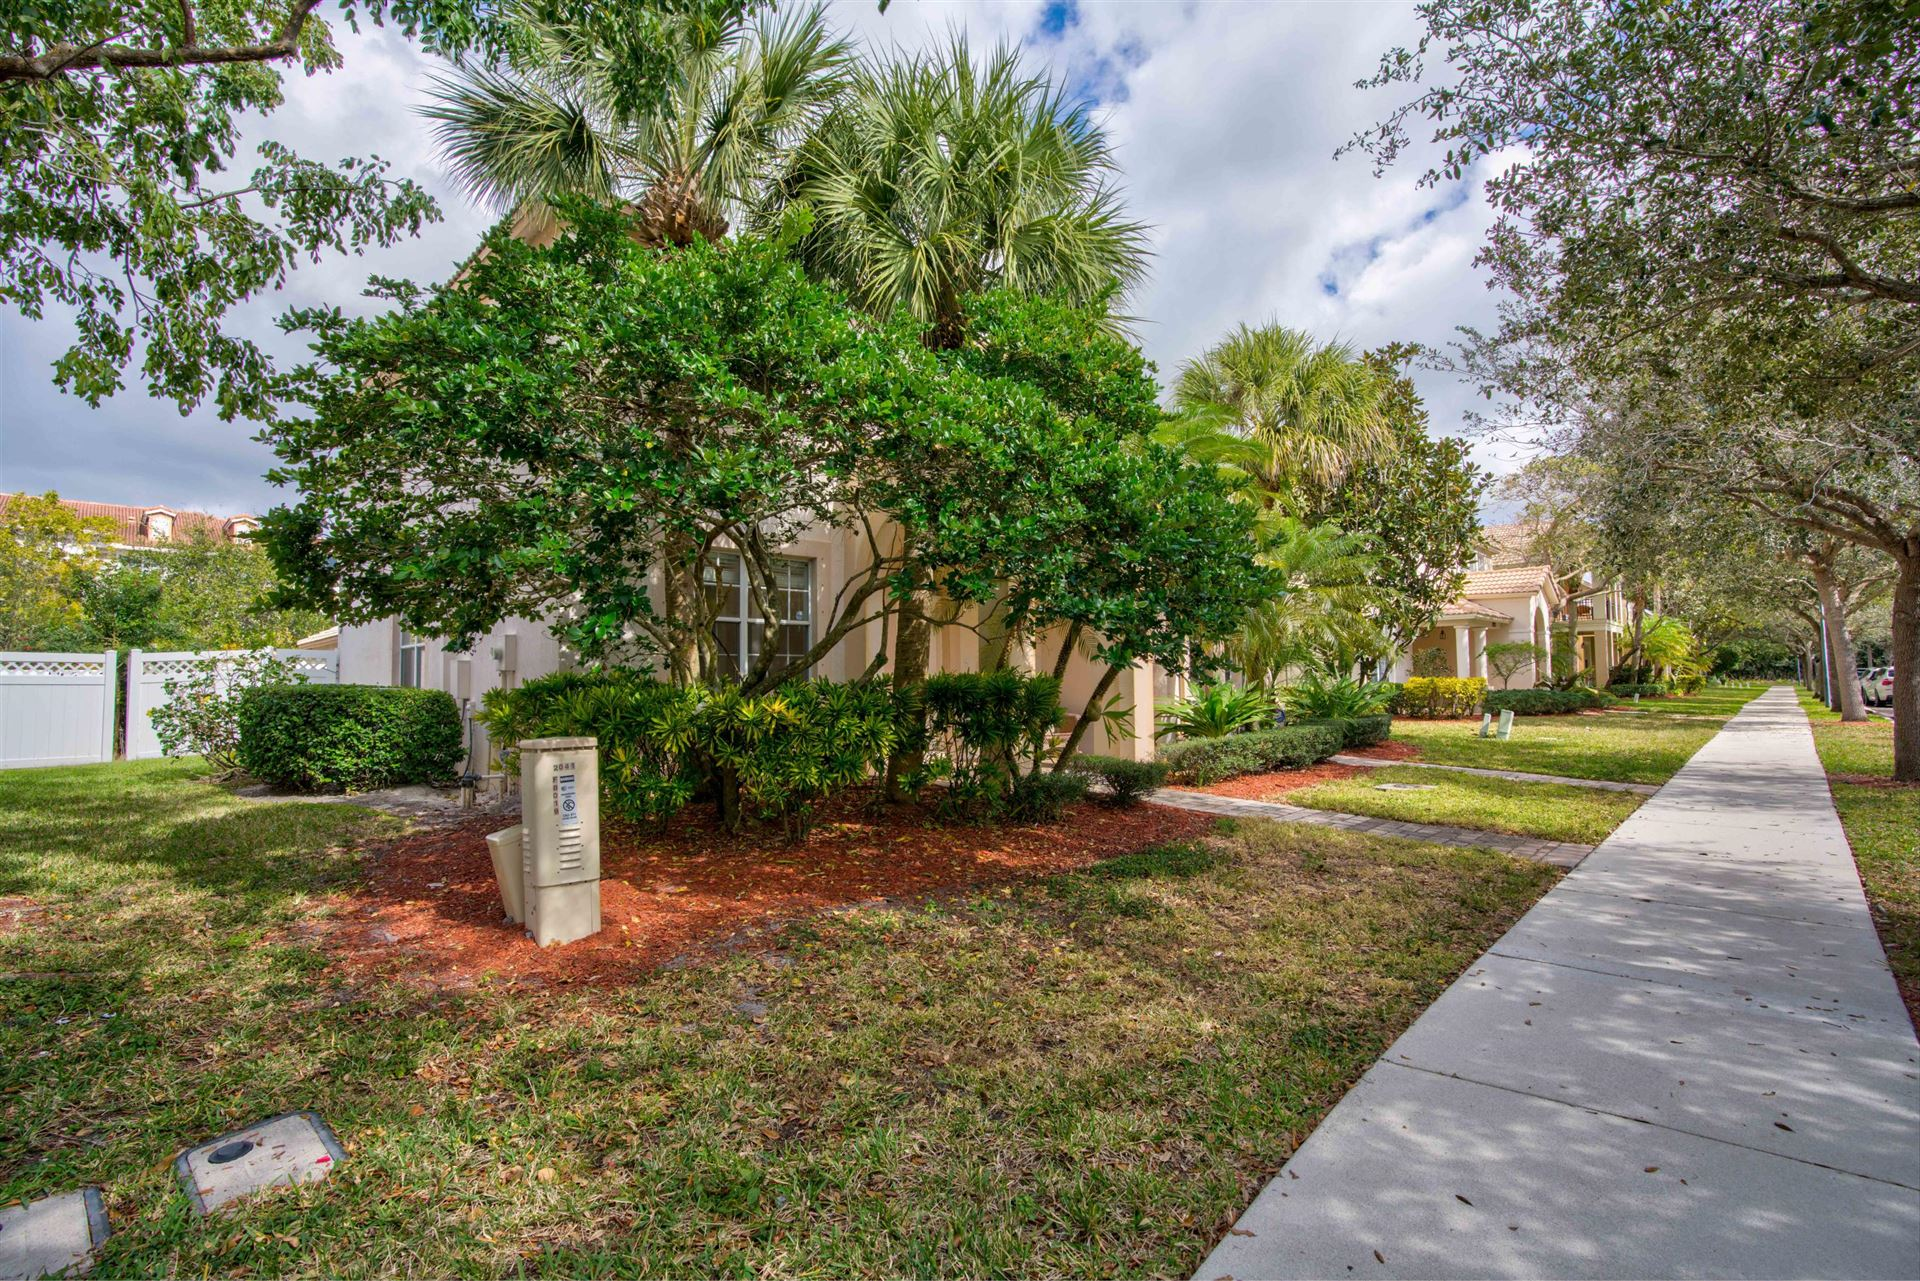 Photo of 8019 Murano Circle, Palm Beach Gardens, FL 33418 (MLS # RX-10687658)